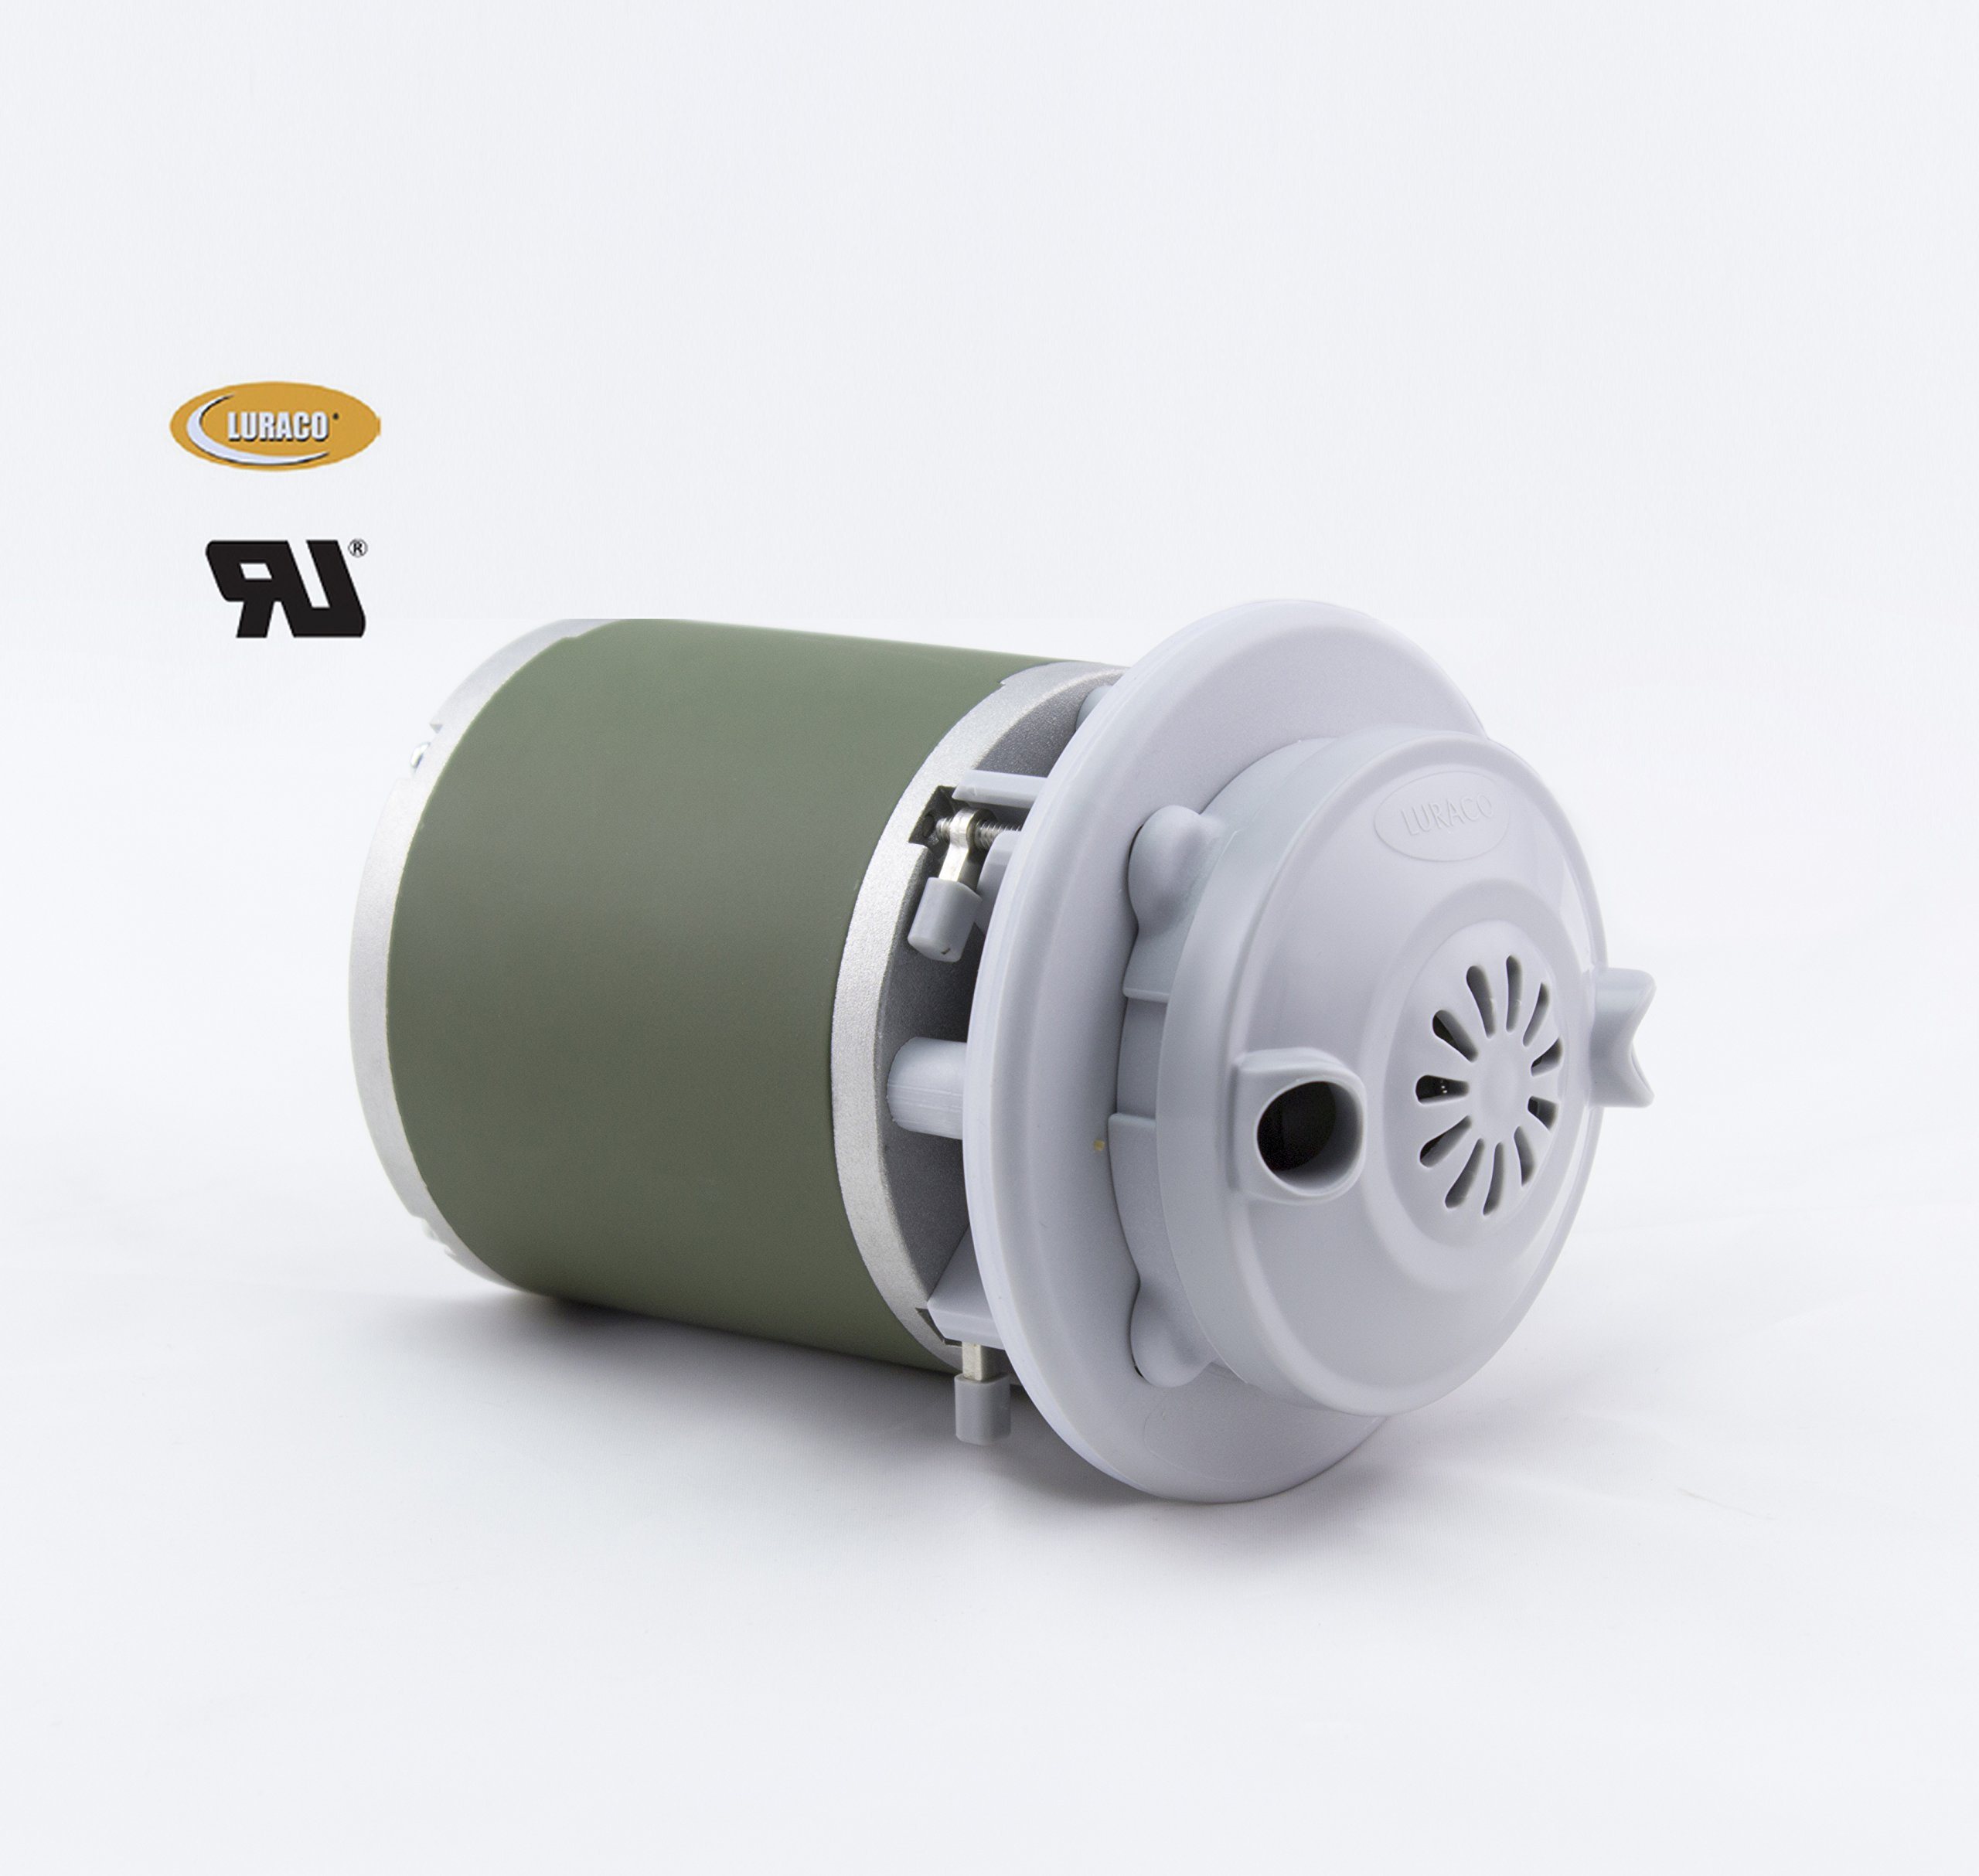 Pipeless Magnetic Jet 004 for Pedicure Spa Tub Best Selling Option in Jets for Pedicure Chair